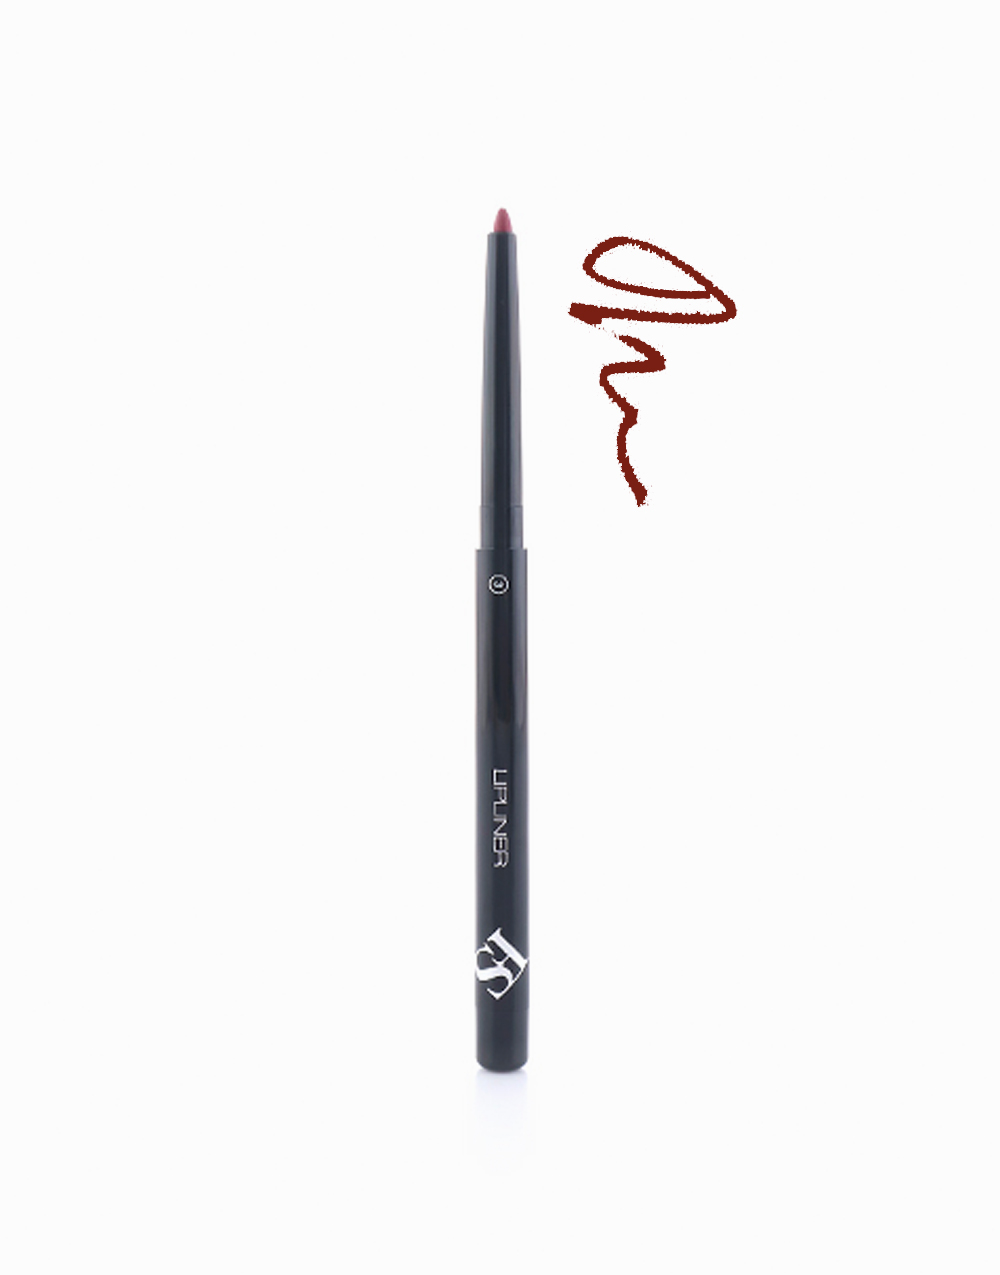 Lipliner by FS Features & Shades   03